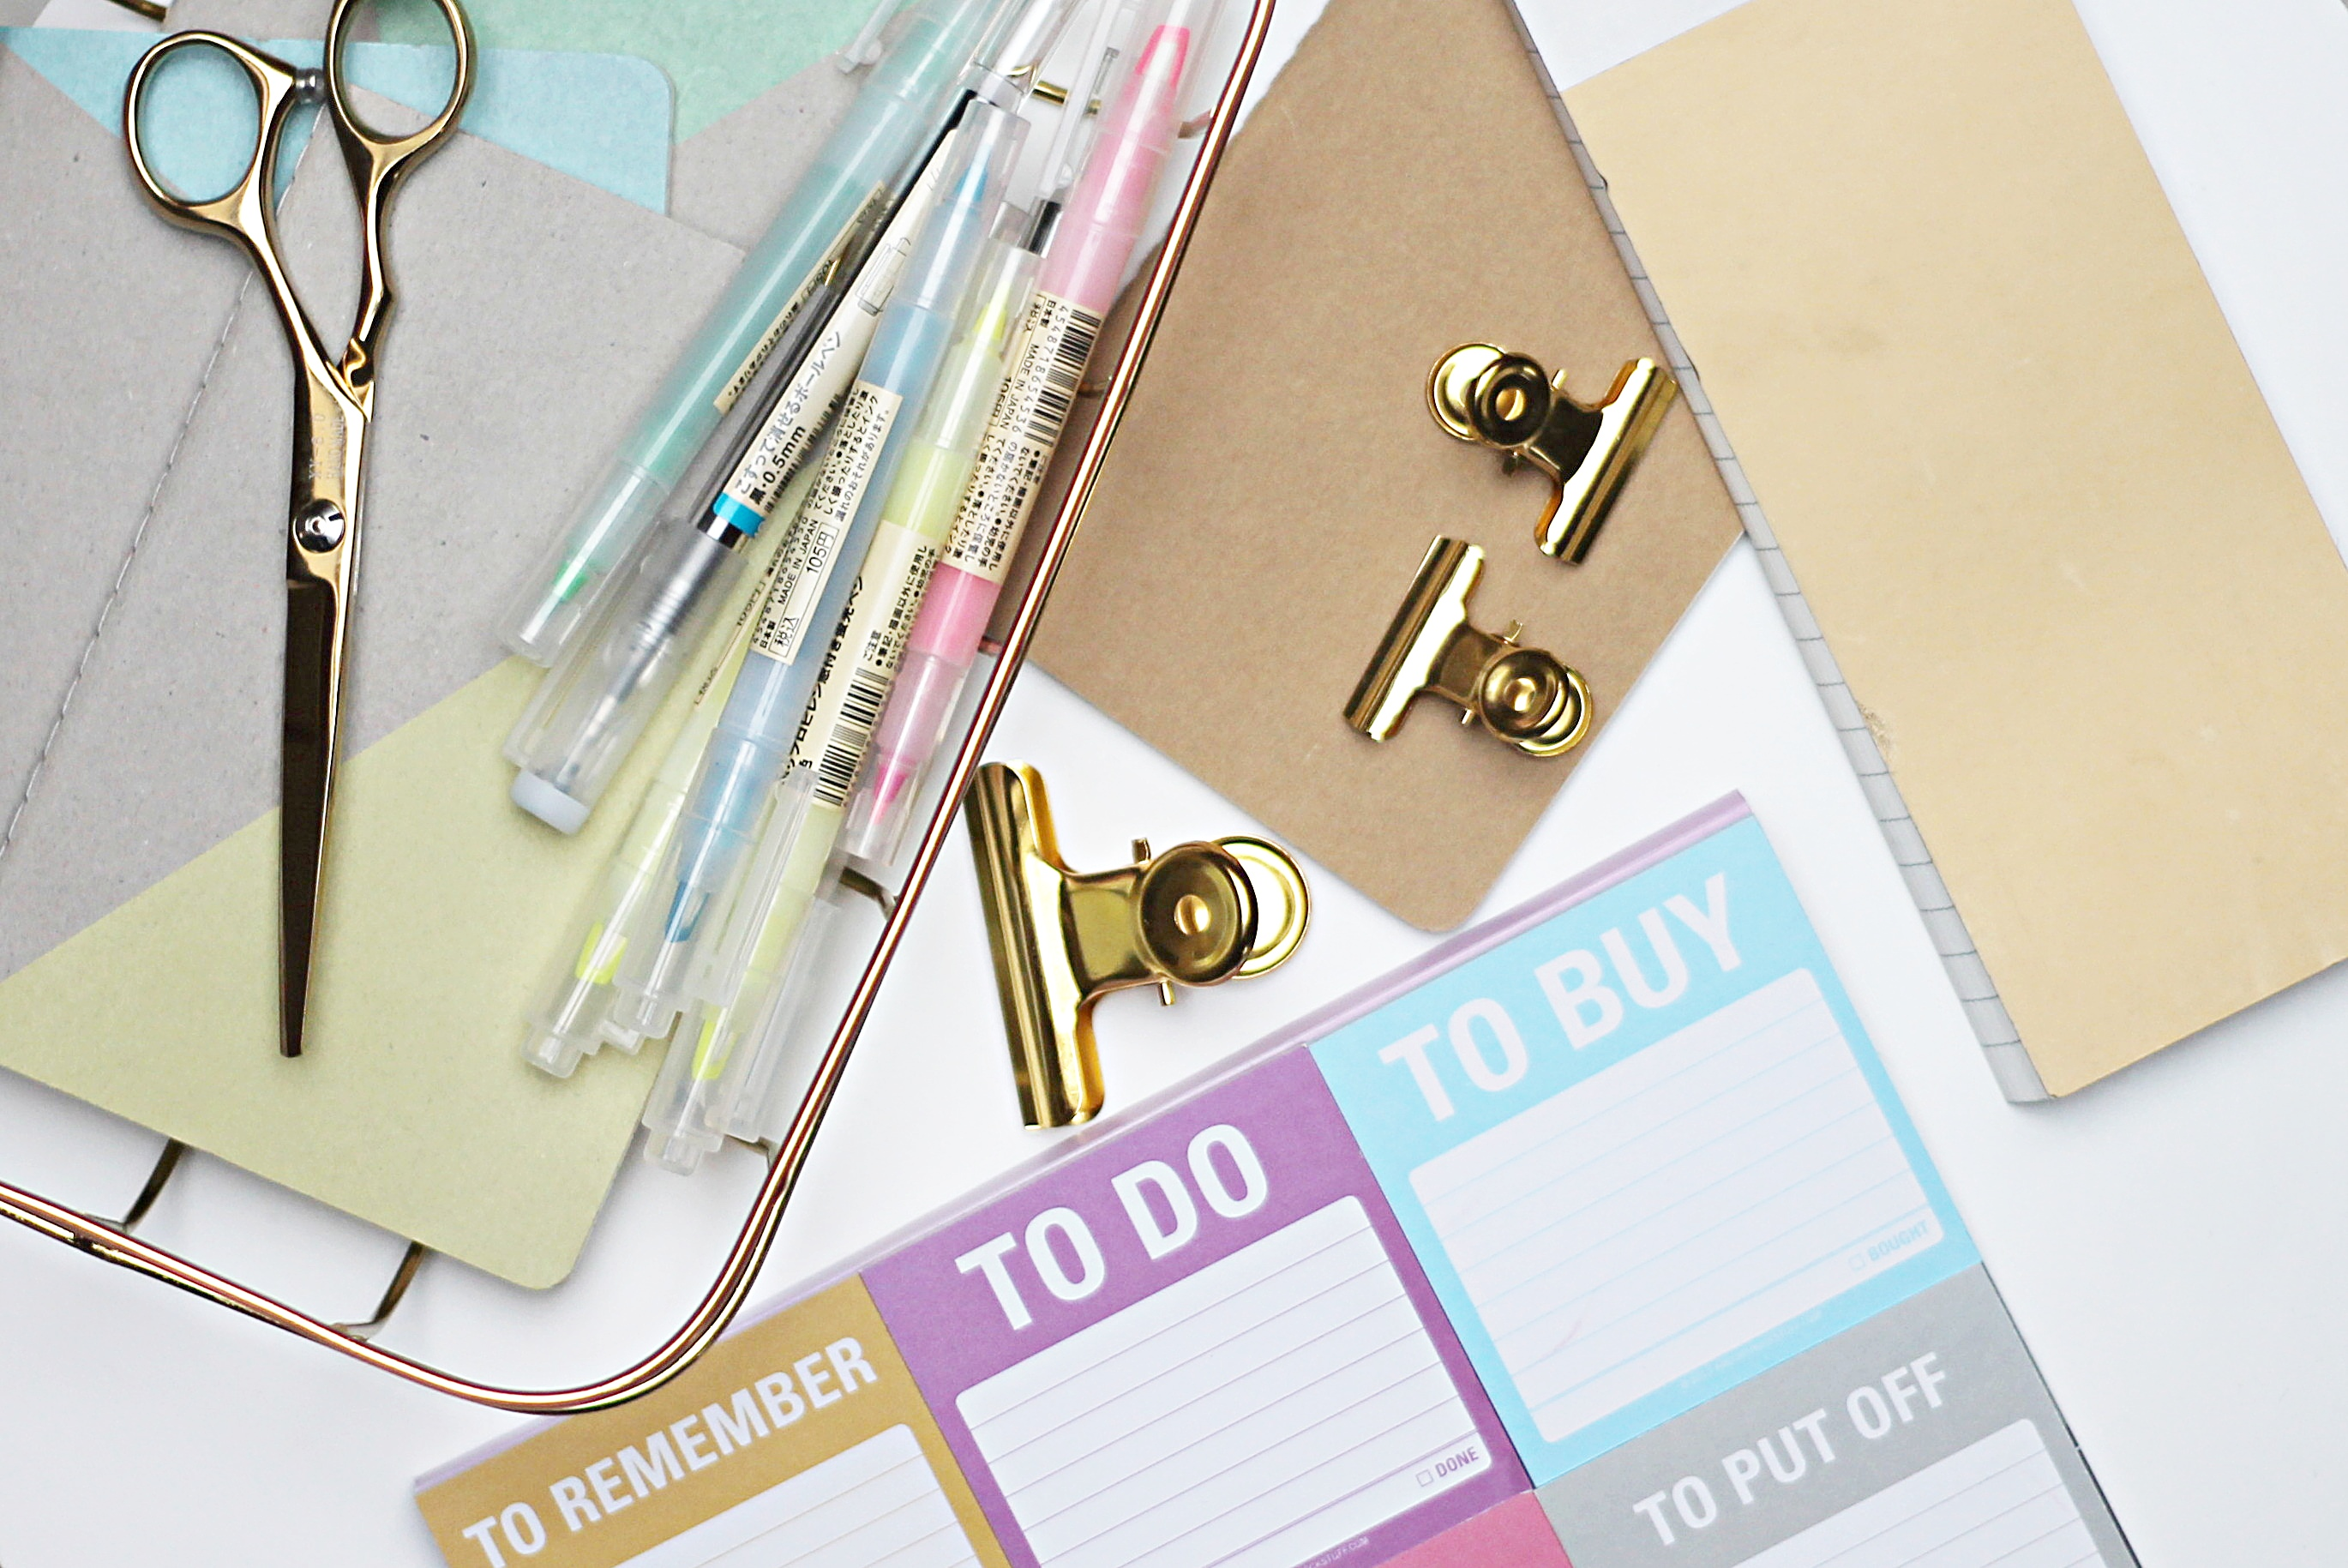 Stationery Love – Mini Büroartikel Haul